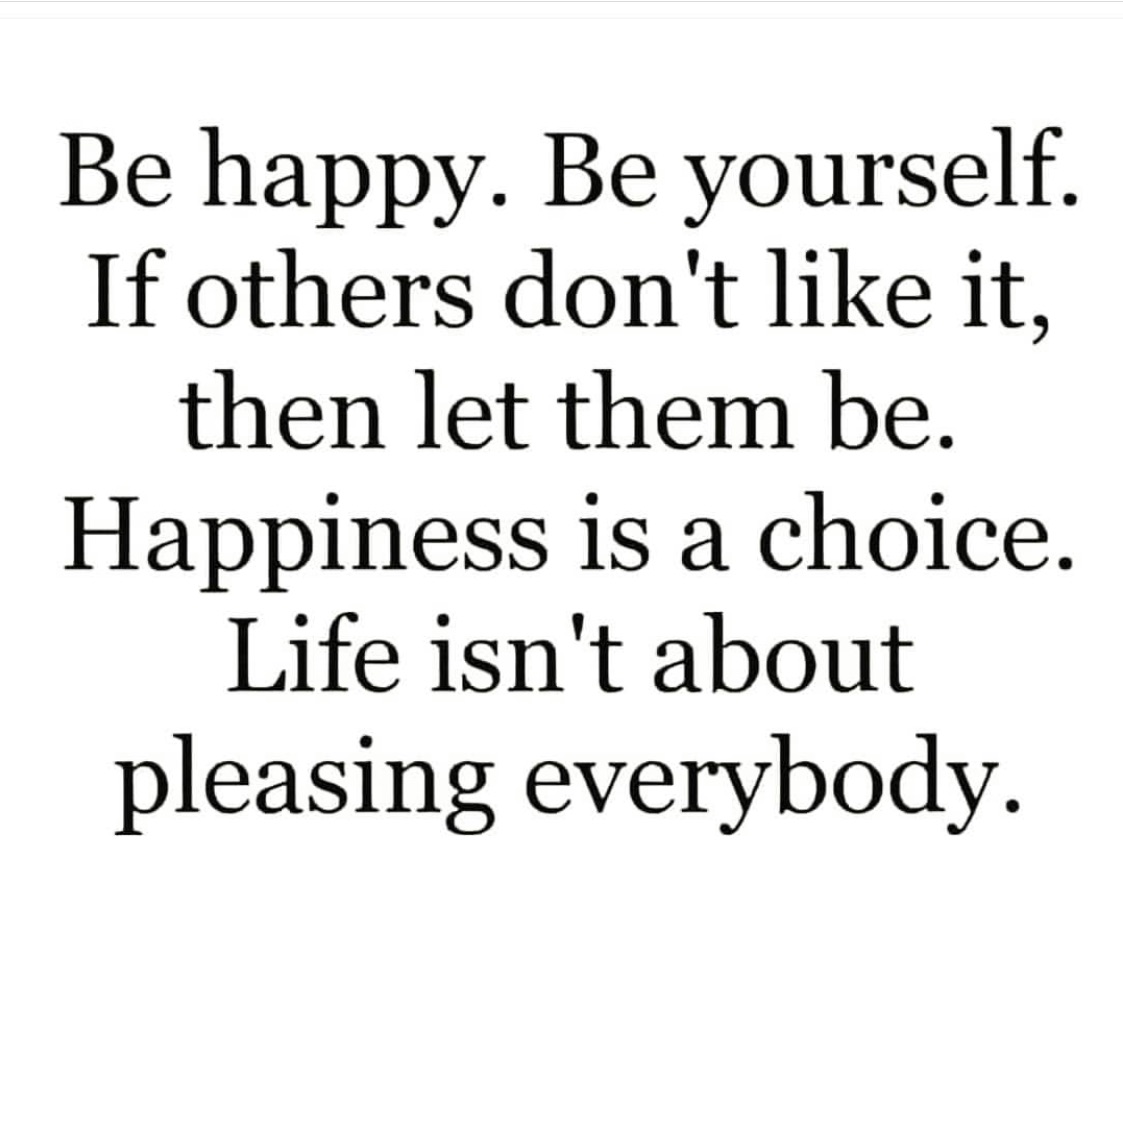 be happy, be yourself, empowering and good vibes